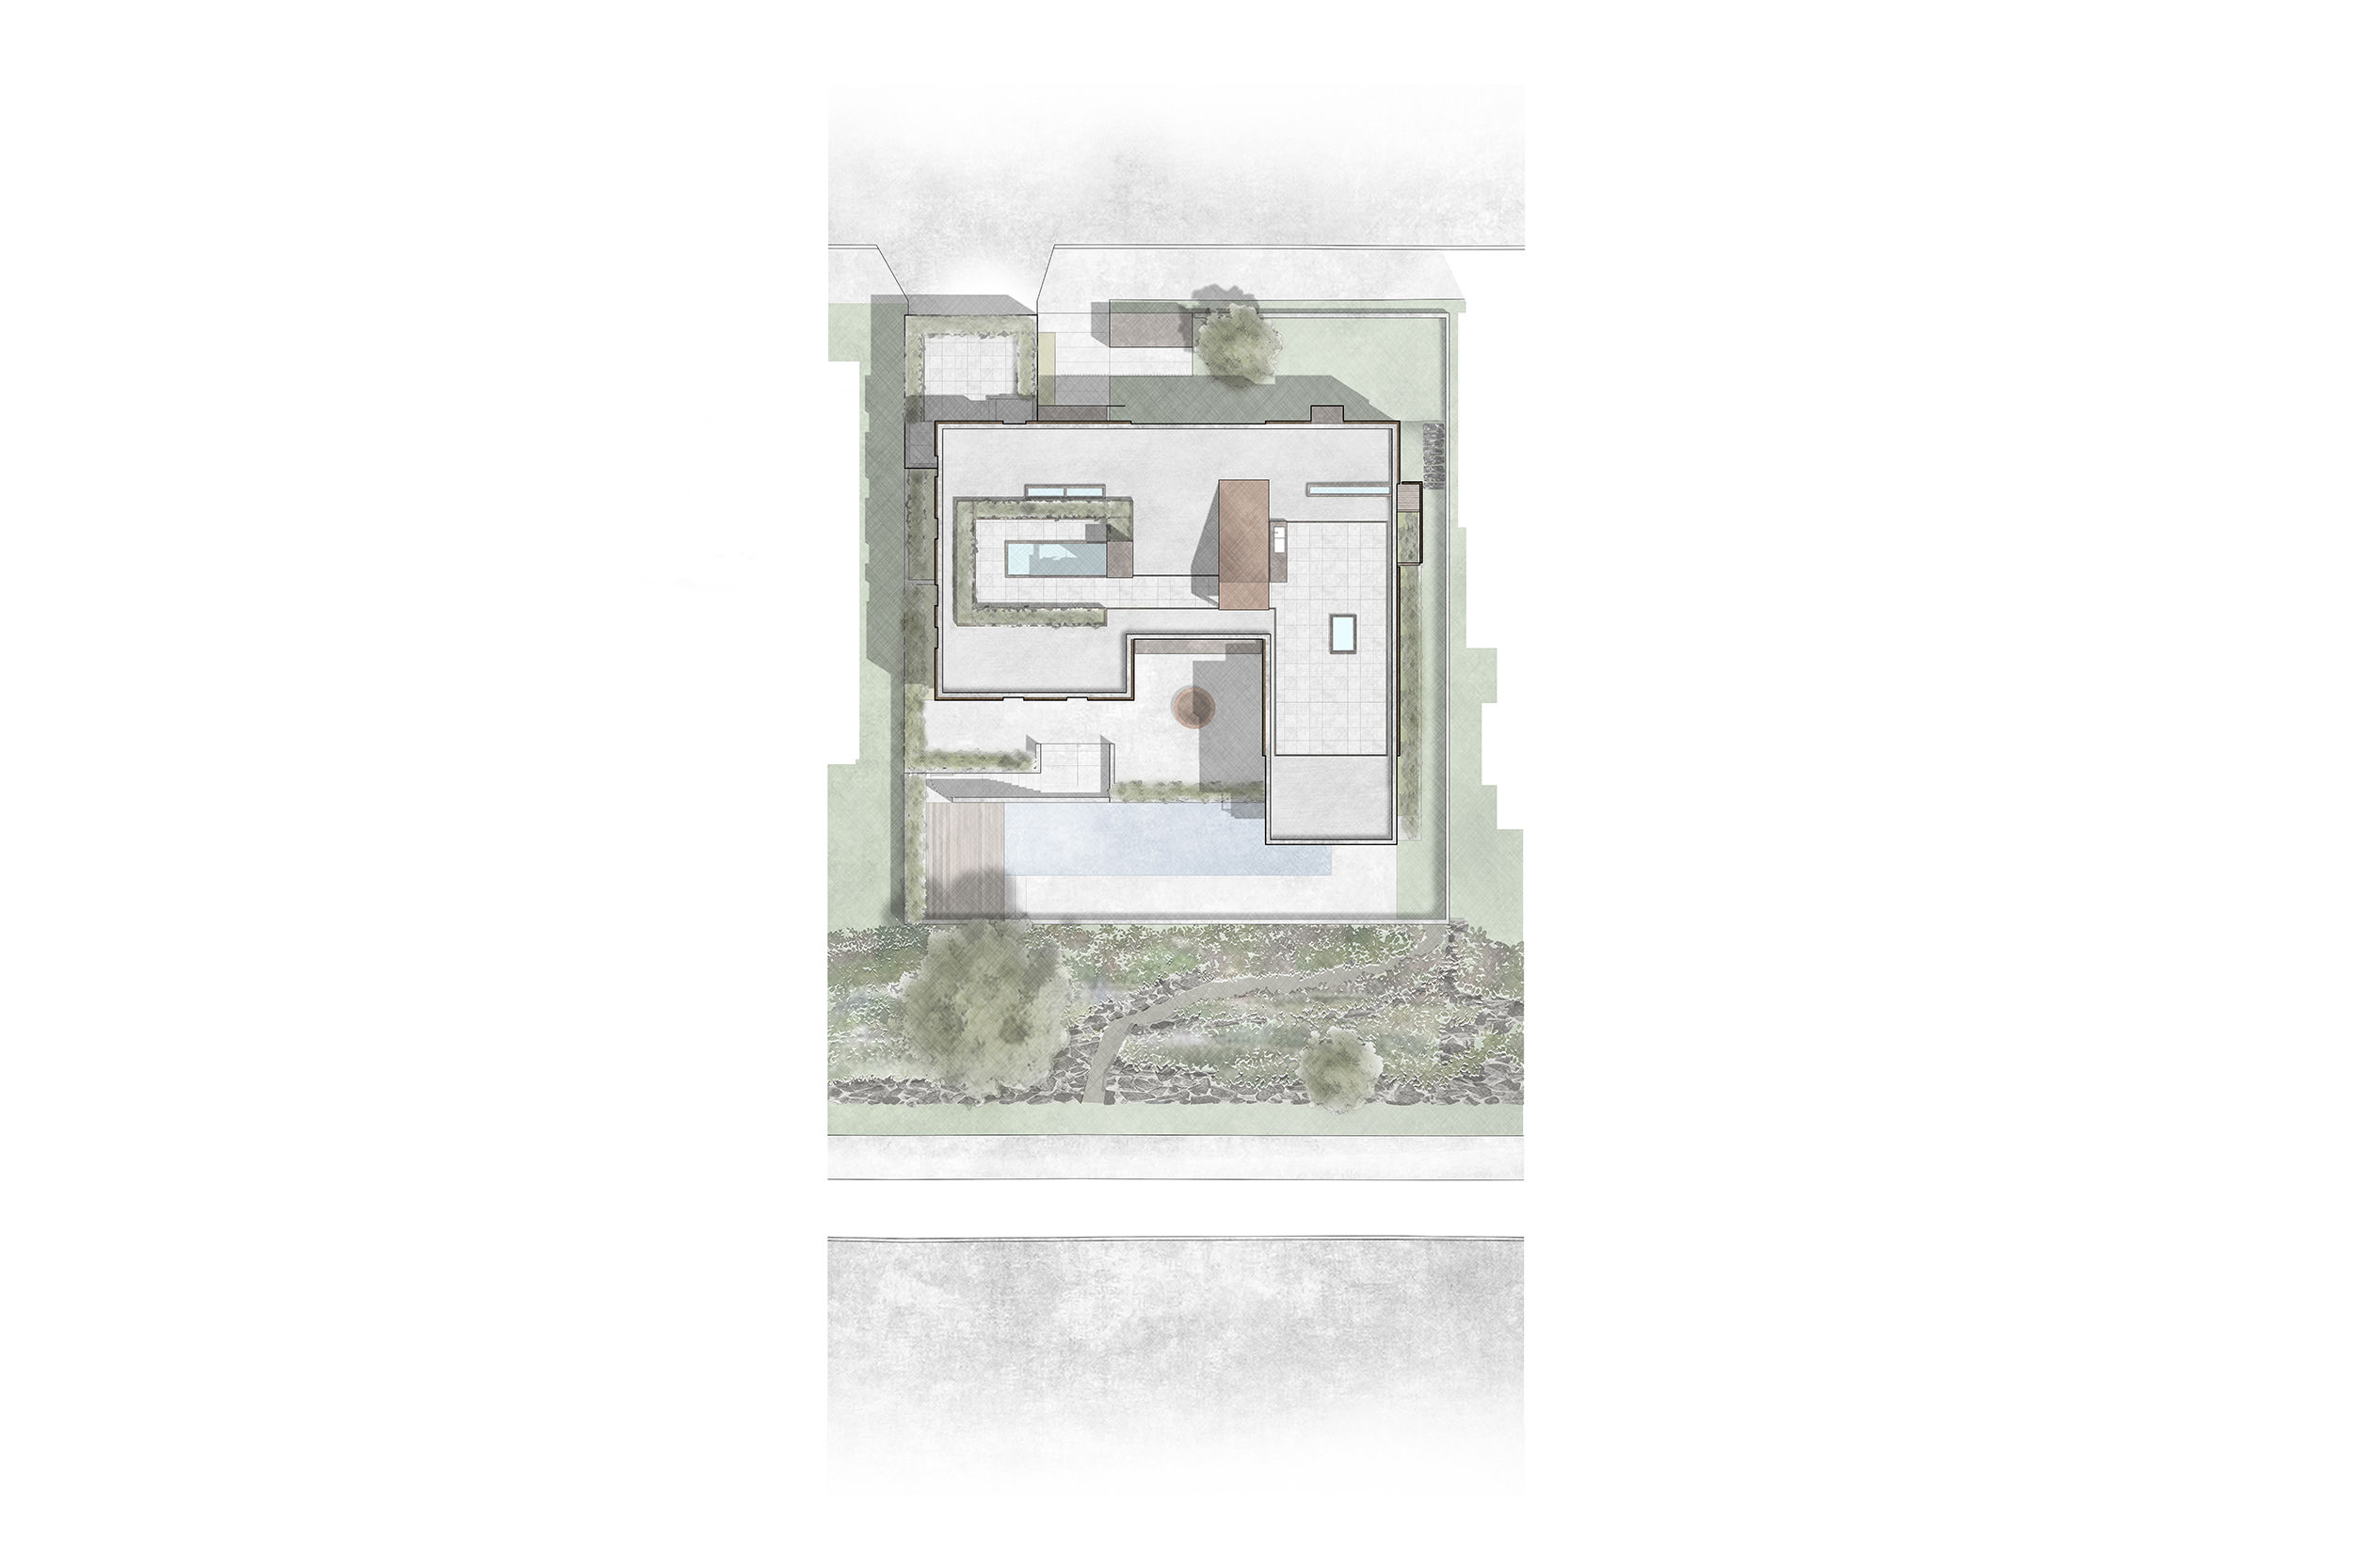 goCstudio_Sound House_Landscape Plan.jpg